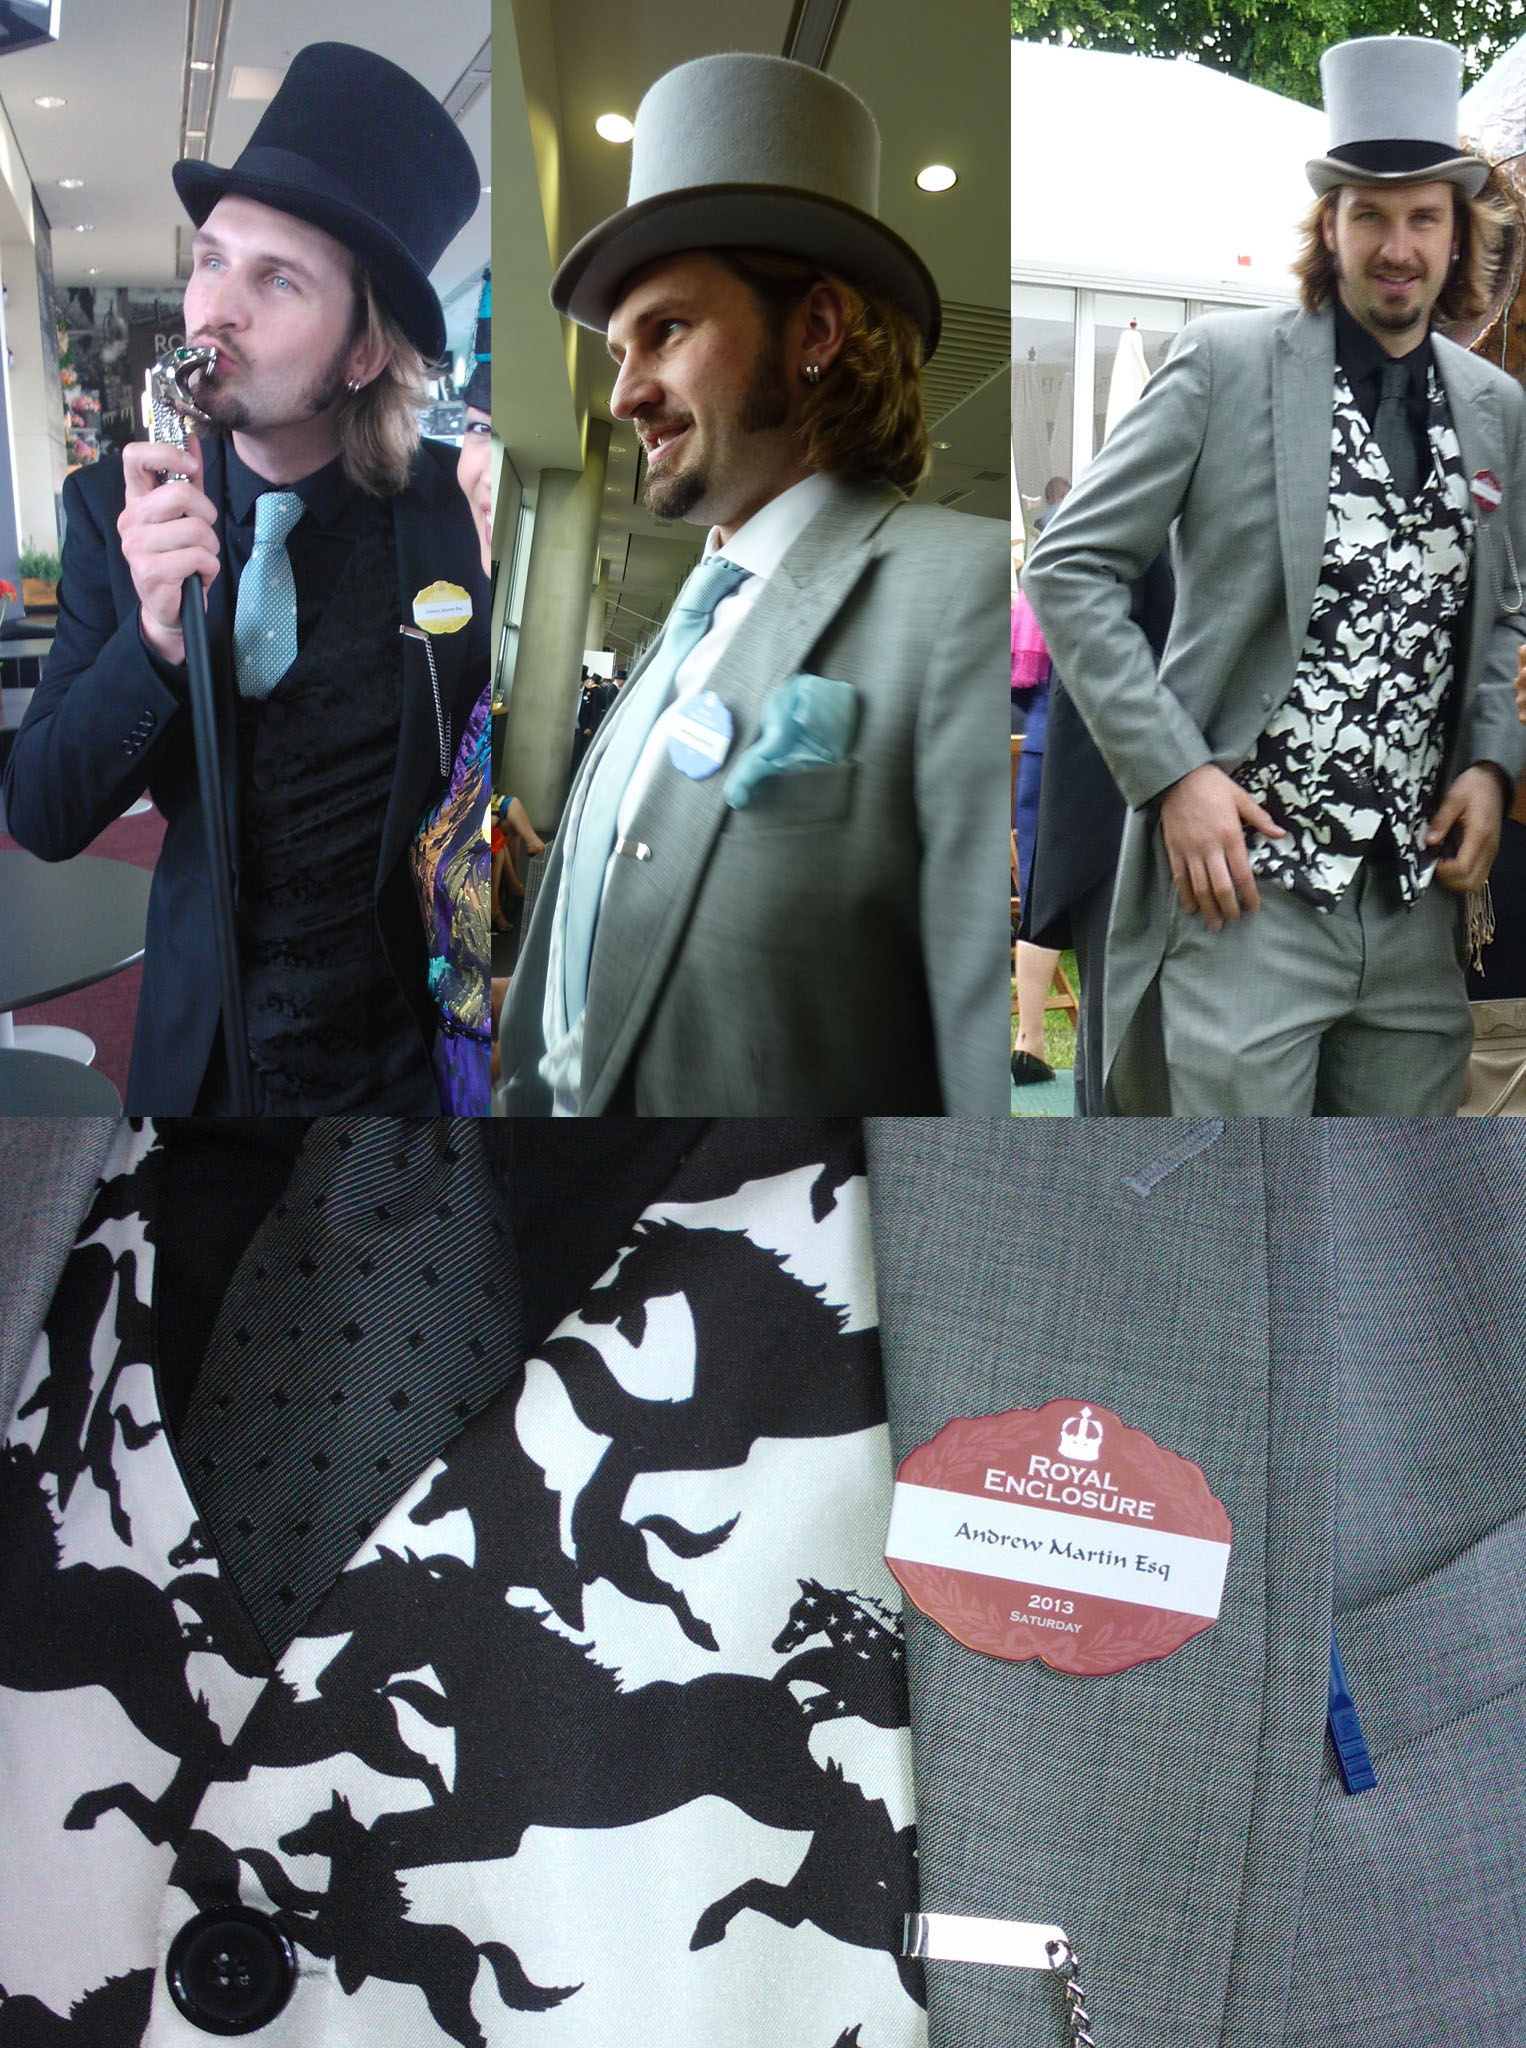 Drew's Royal Ascot outfits, clockwise from top left: Tuesday, Friday, Saturday and a close-up of his custom waistcoat.